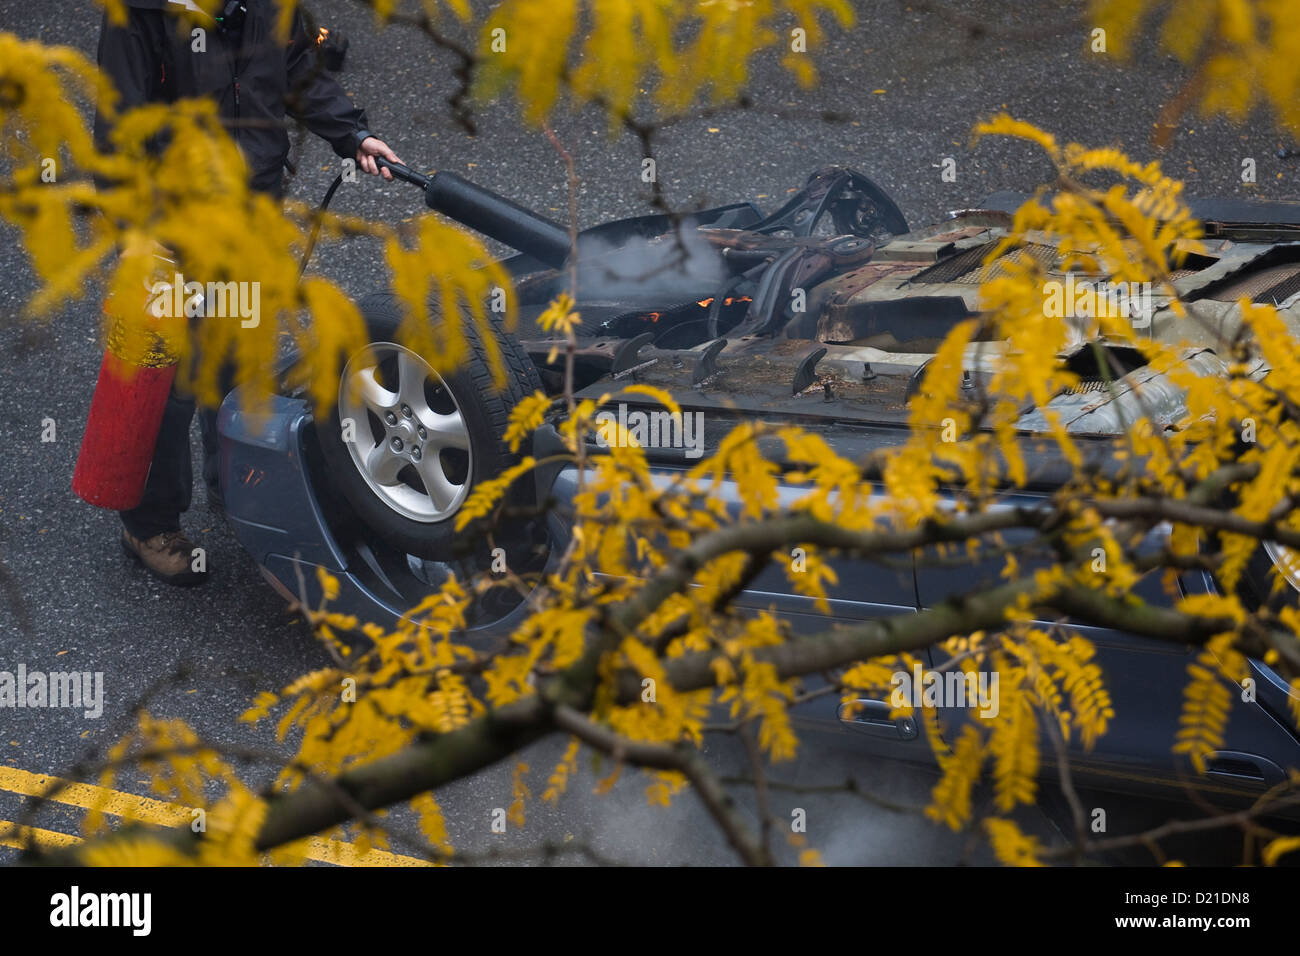 A man using a red fire extinguisher to put out a fire on an overturned automobile on a street - Stock Image